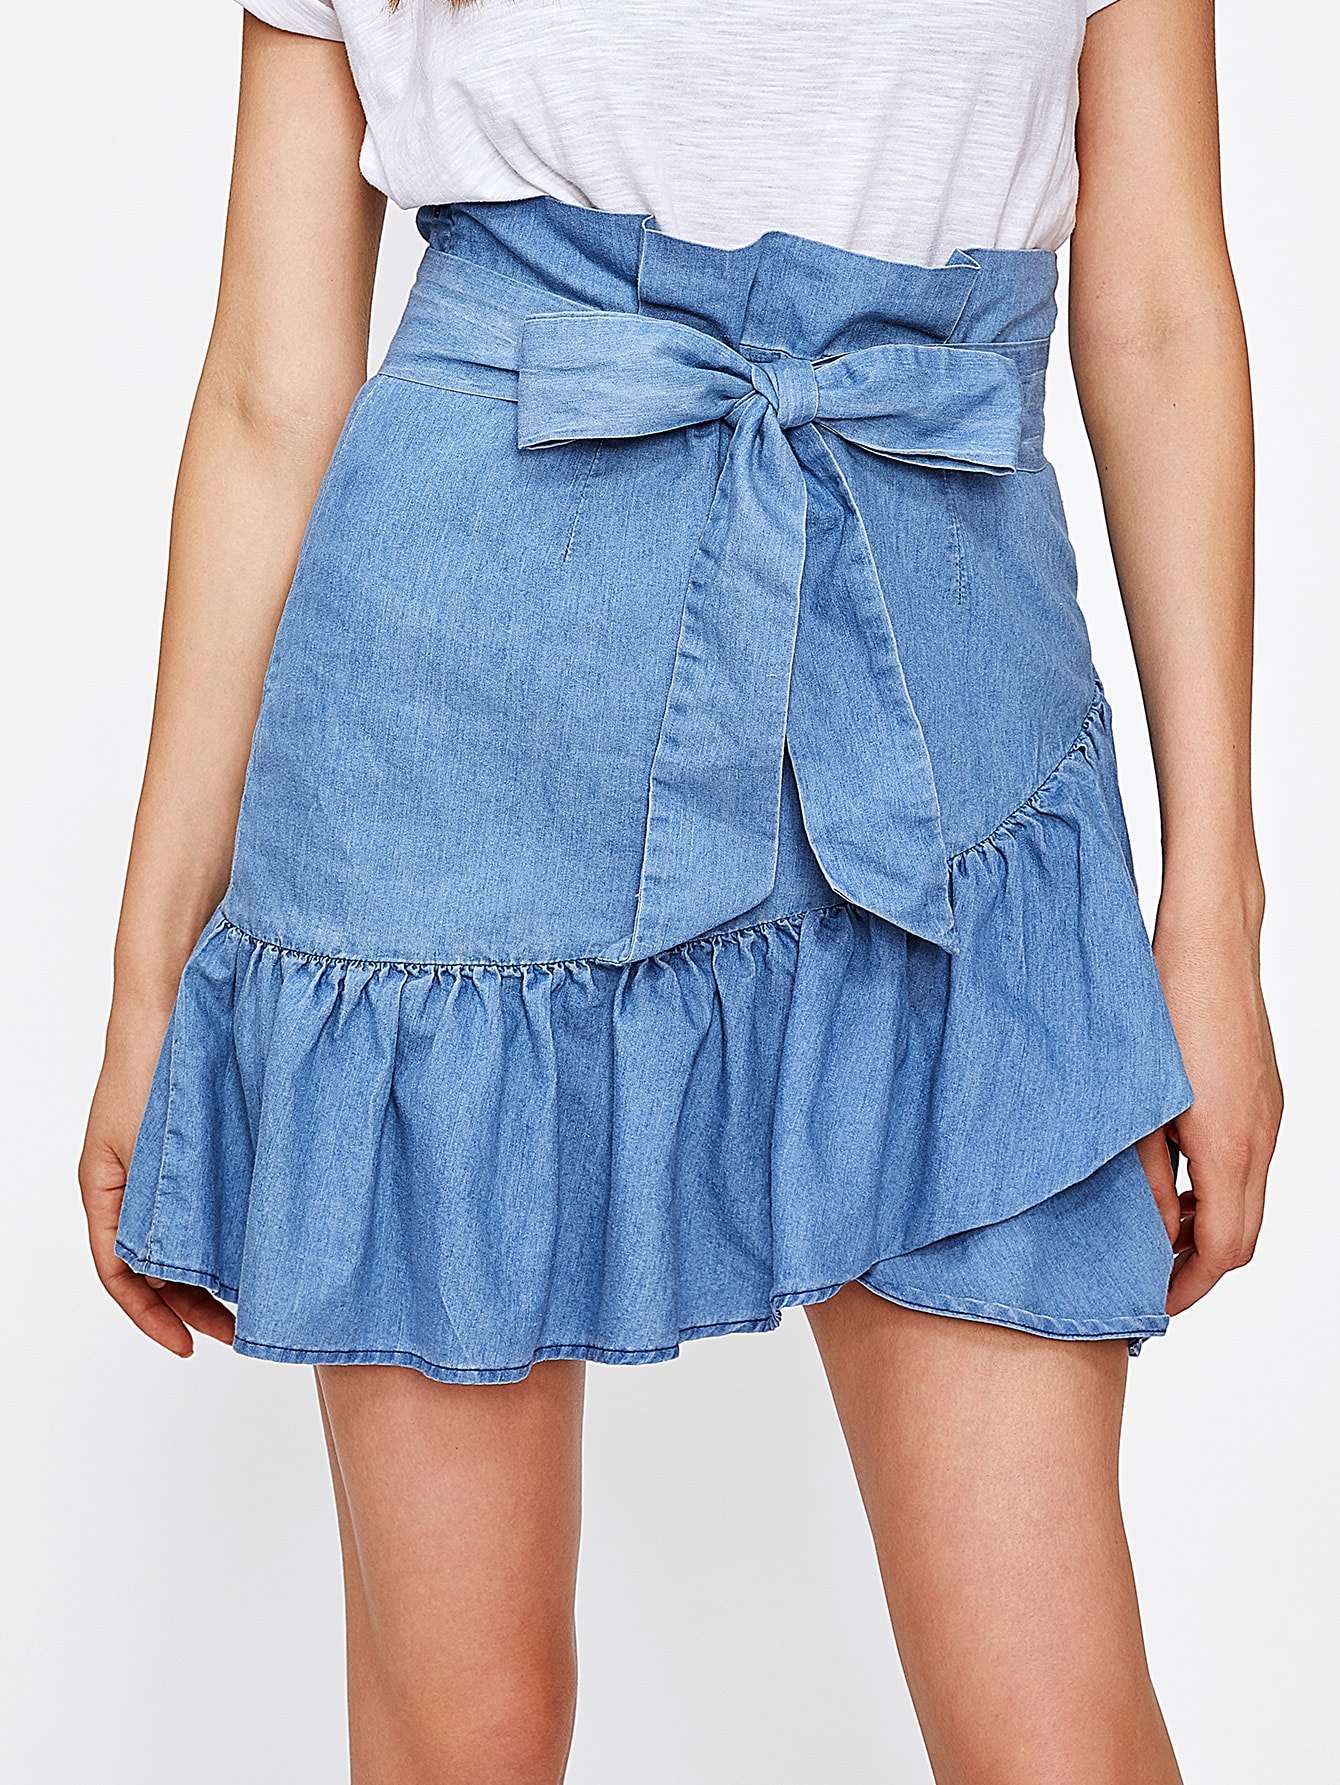 Self Belted Ruffle Hem Overlap Skirt